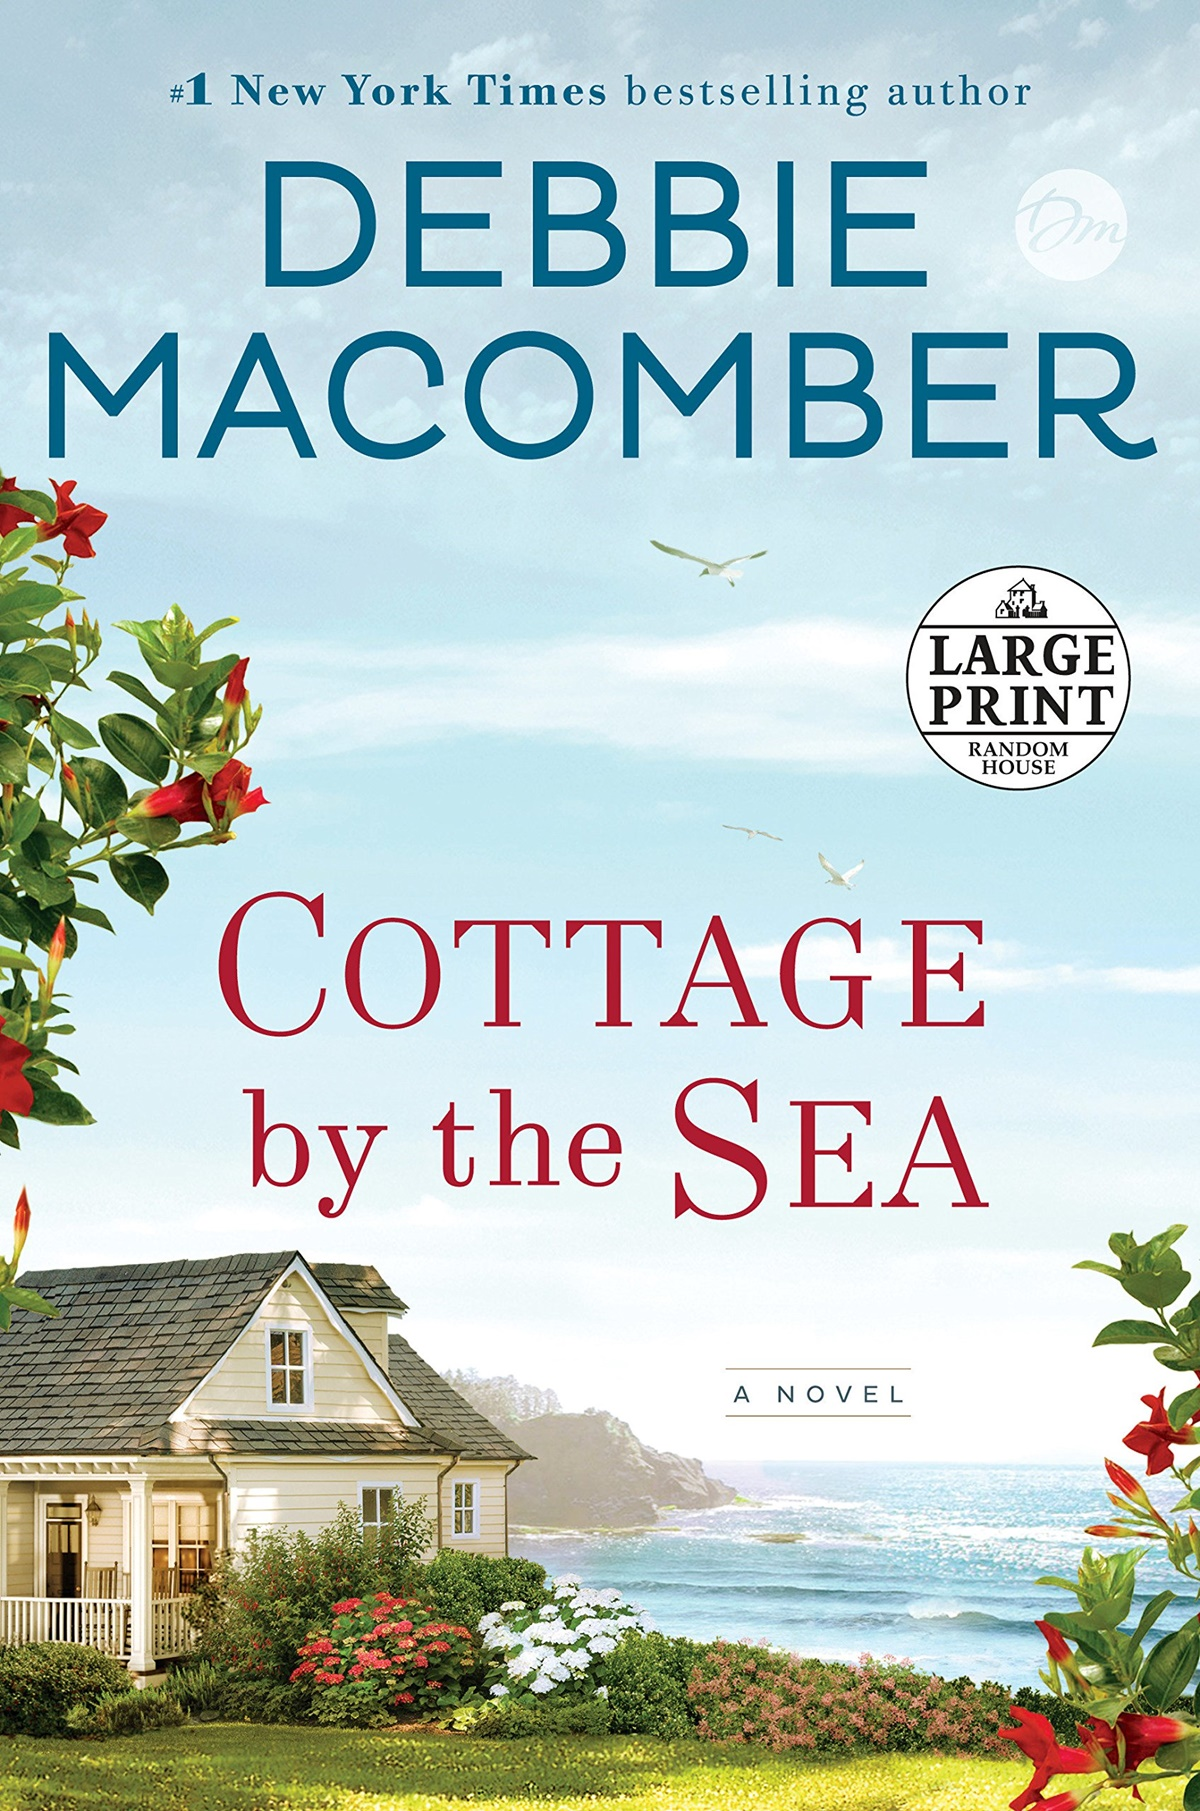 Clean Romance Novels, cover of Cottage by the Sea by Debbie Macomber, books